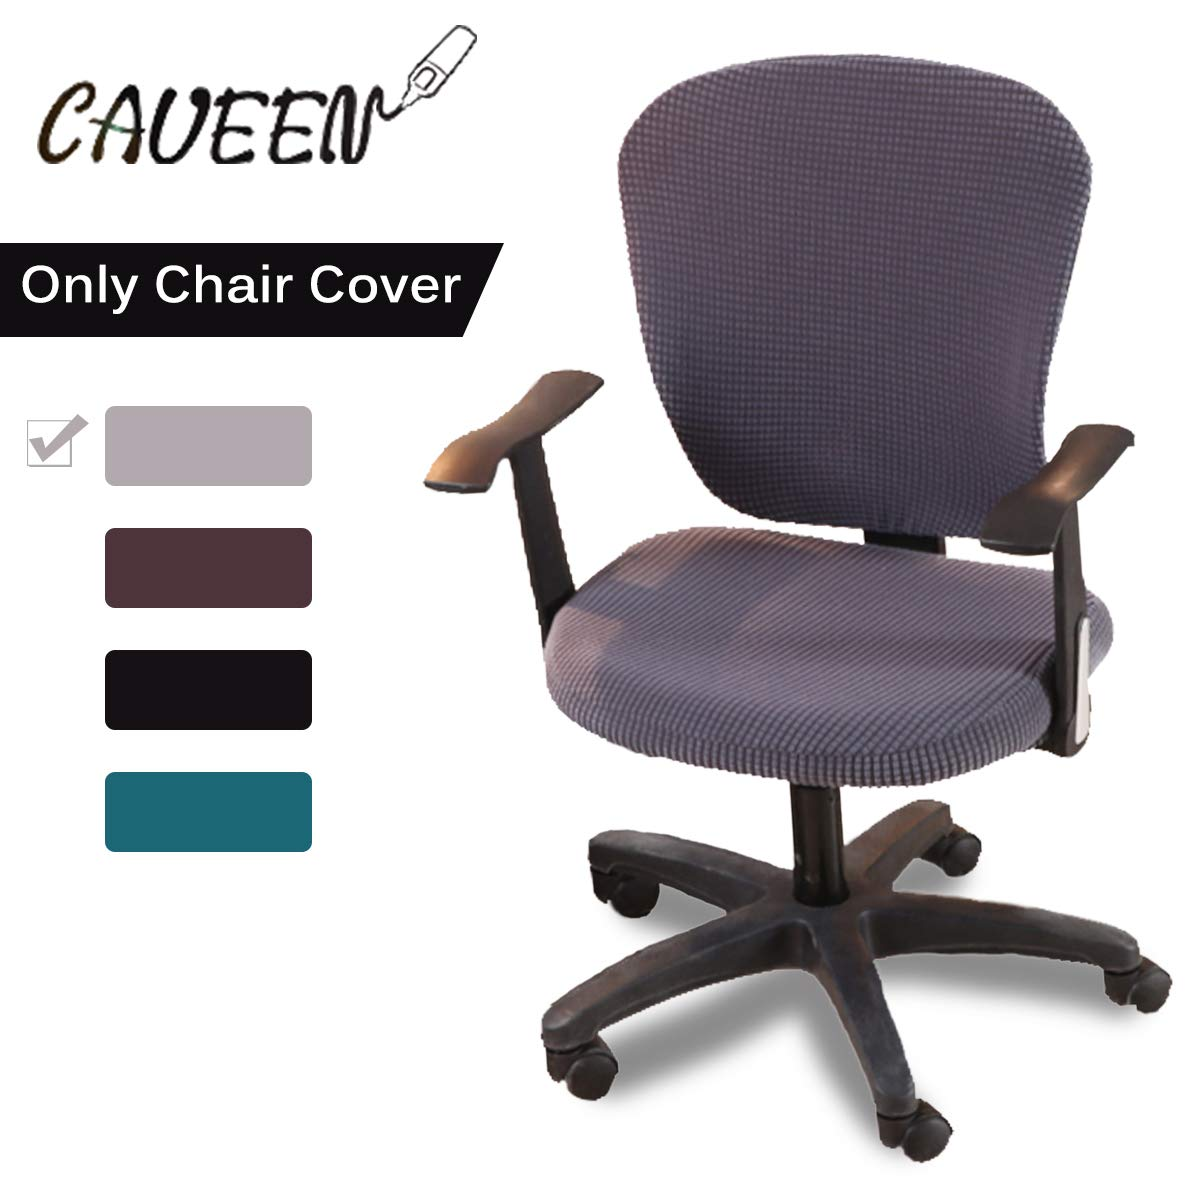 CAVEEN Stretch Office Computer Chair Covers Universal Protective Seat Cover Removable Washable Anti-dust Chair Slipcover 2-Pack Light Grey